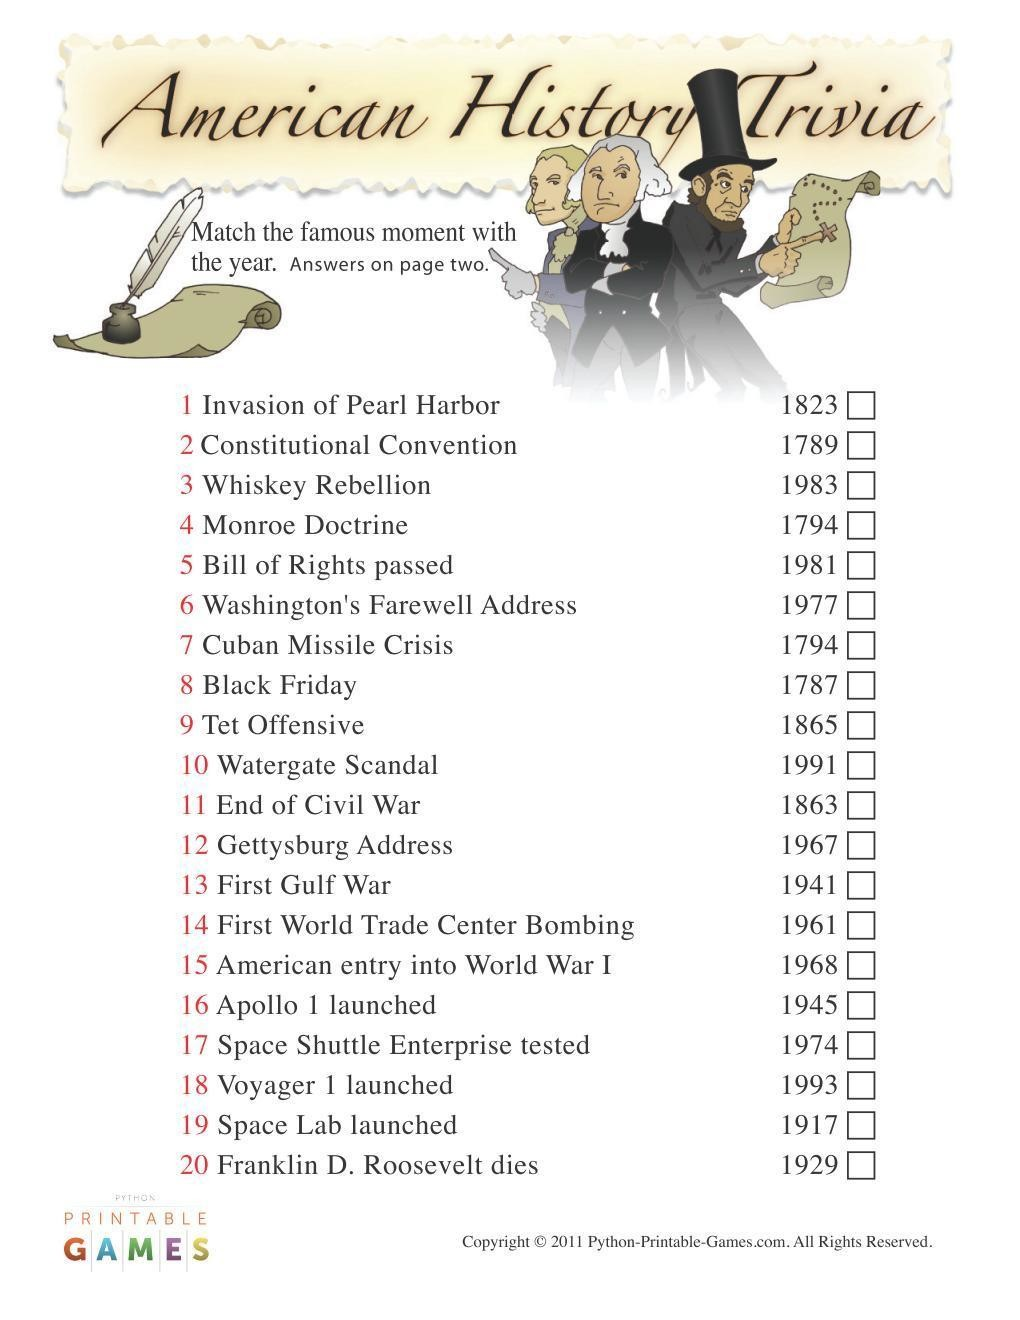 photo regarding American History Trivia Questions and Answers Printable called American Video games: American Record Trivia